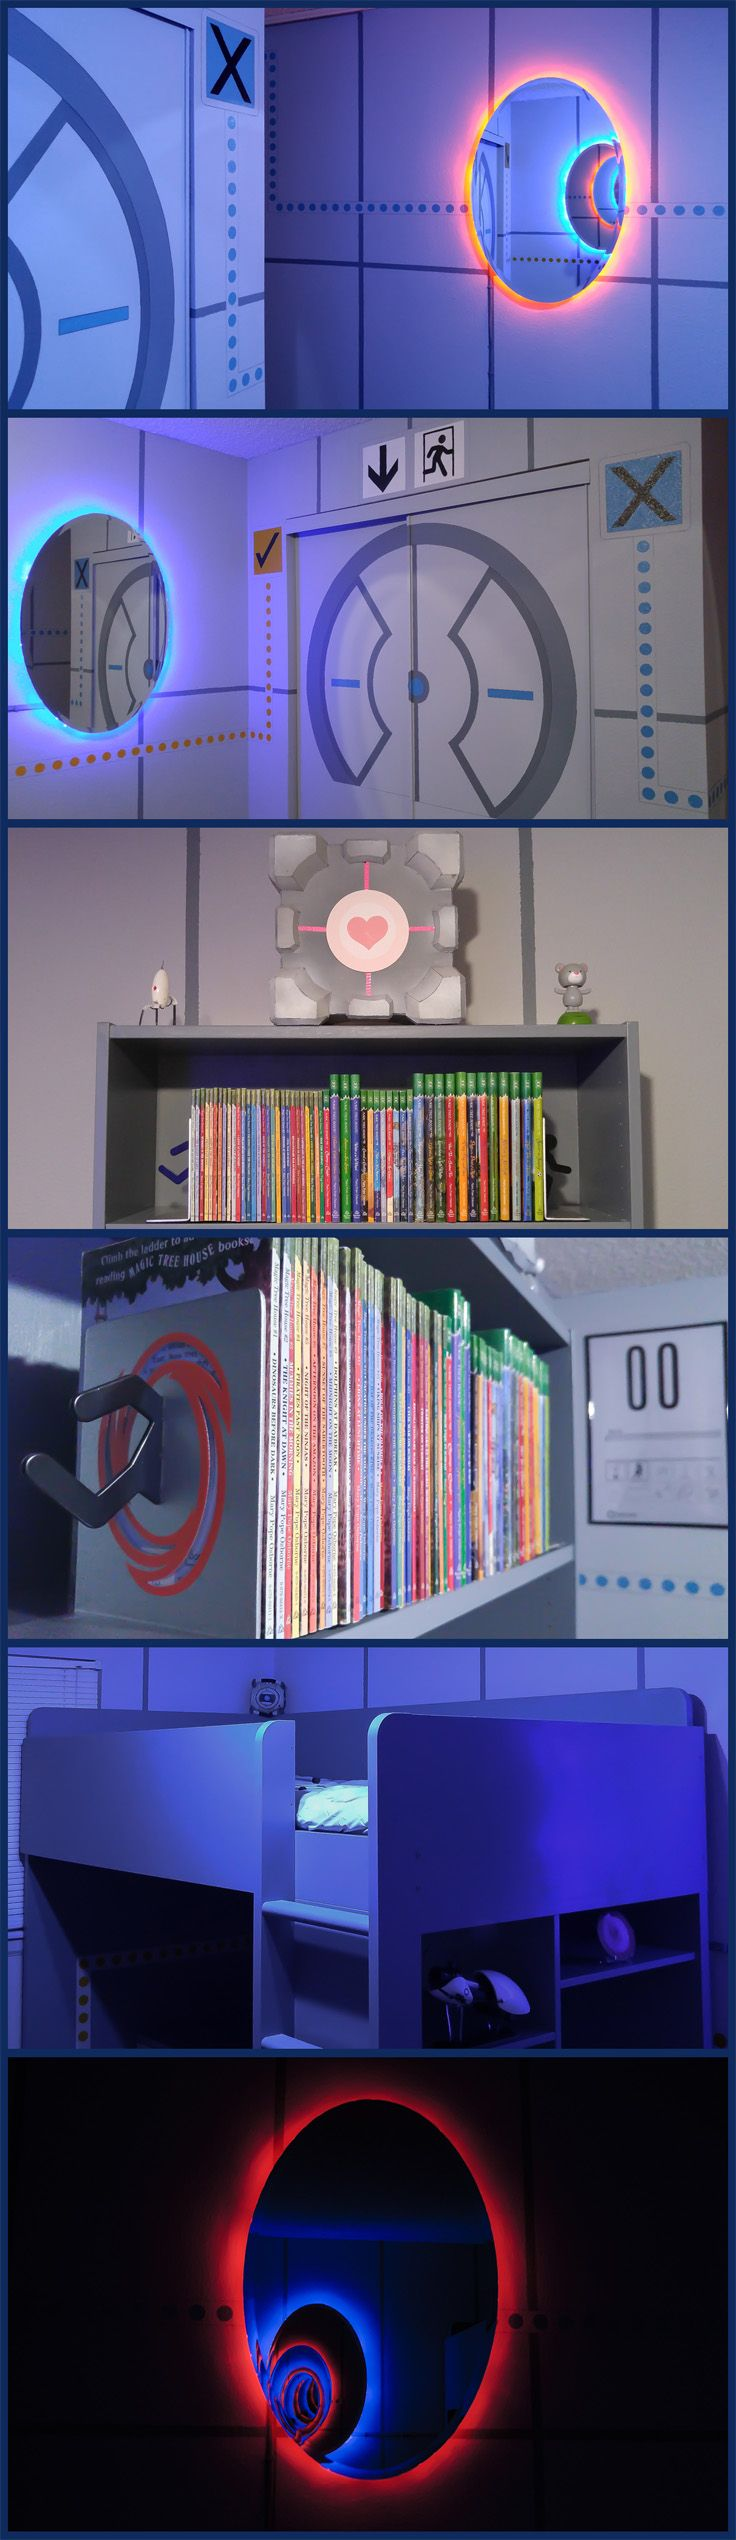 The ultimate Portal themed bedroom. Video Game come to life. Great LED mirrors and closet door.